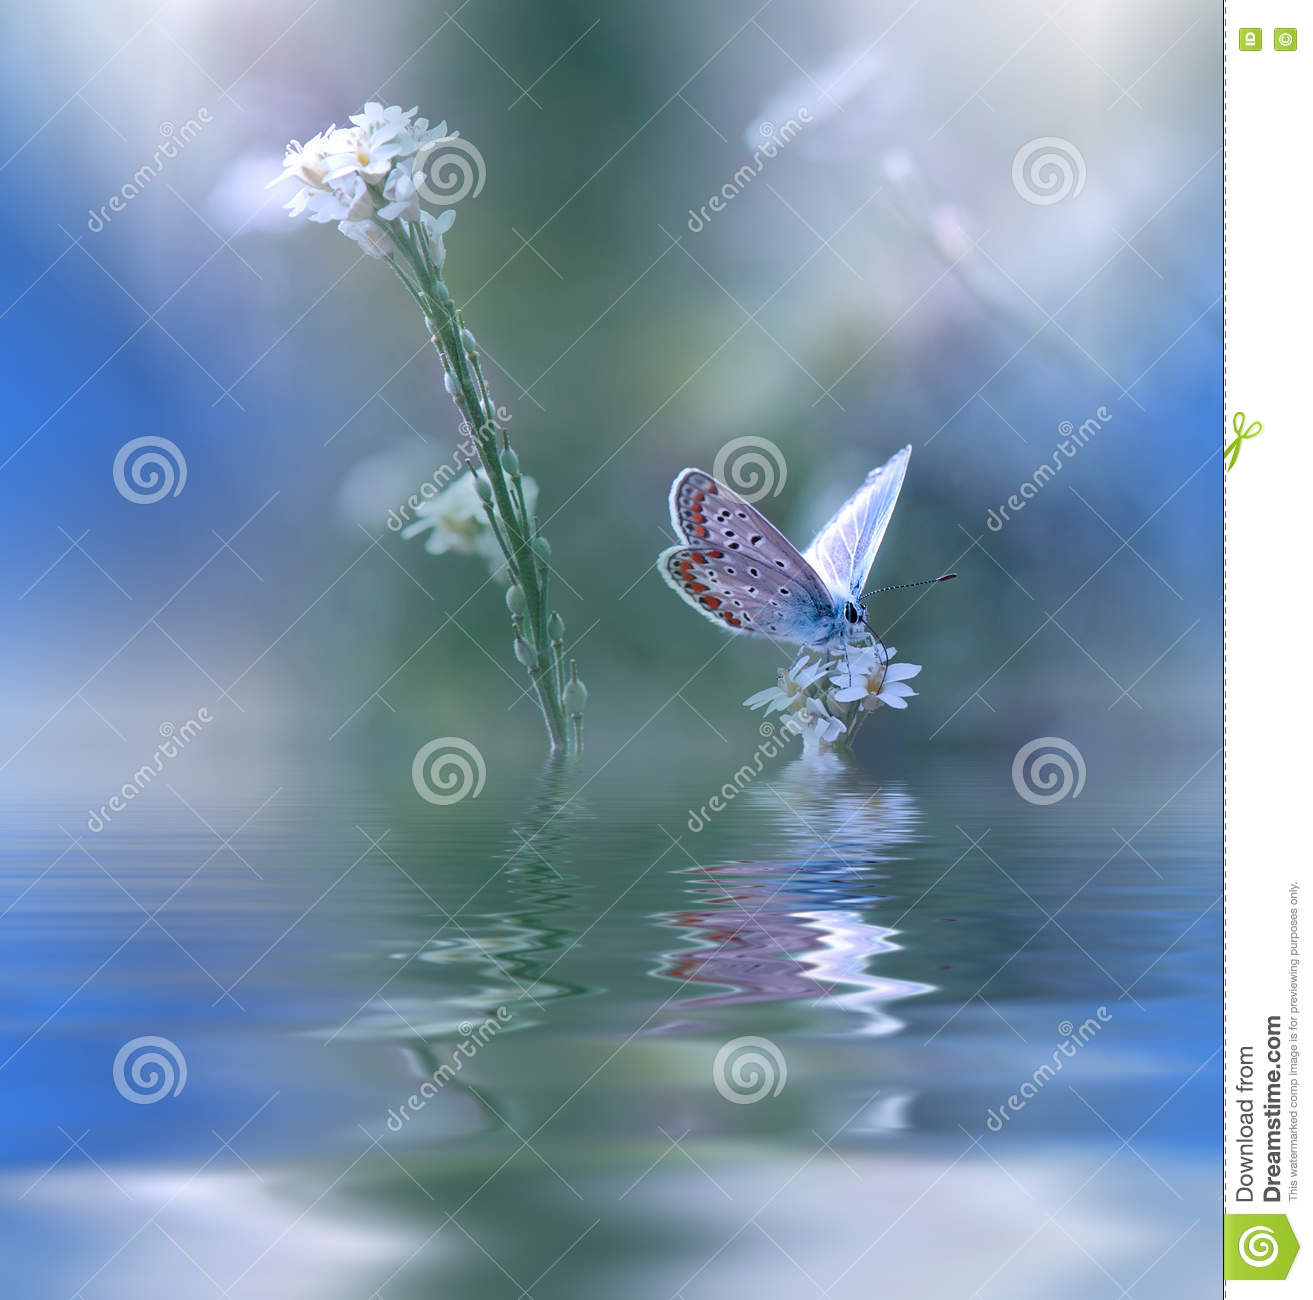 Blue Magic Butterfly Over Water And Wildflowers Amazing Beautiful Nature Background Colorful Blue Wallpaper Colors Art Spa Flowers Stock Image Image Of Cyan Morph 82283139,Tapered Rectangular Lamp Shades Uk